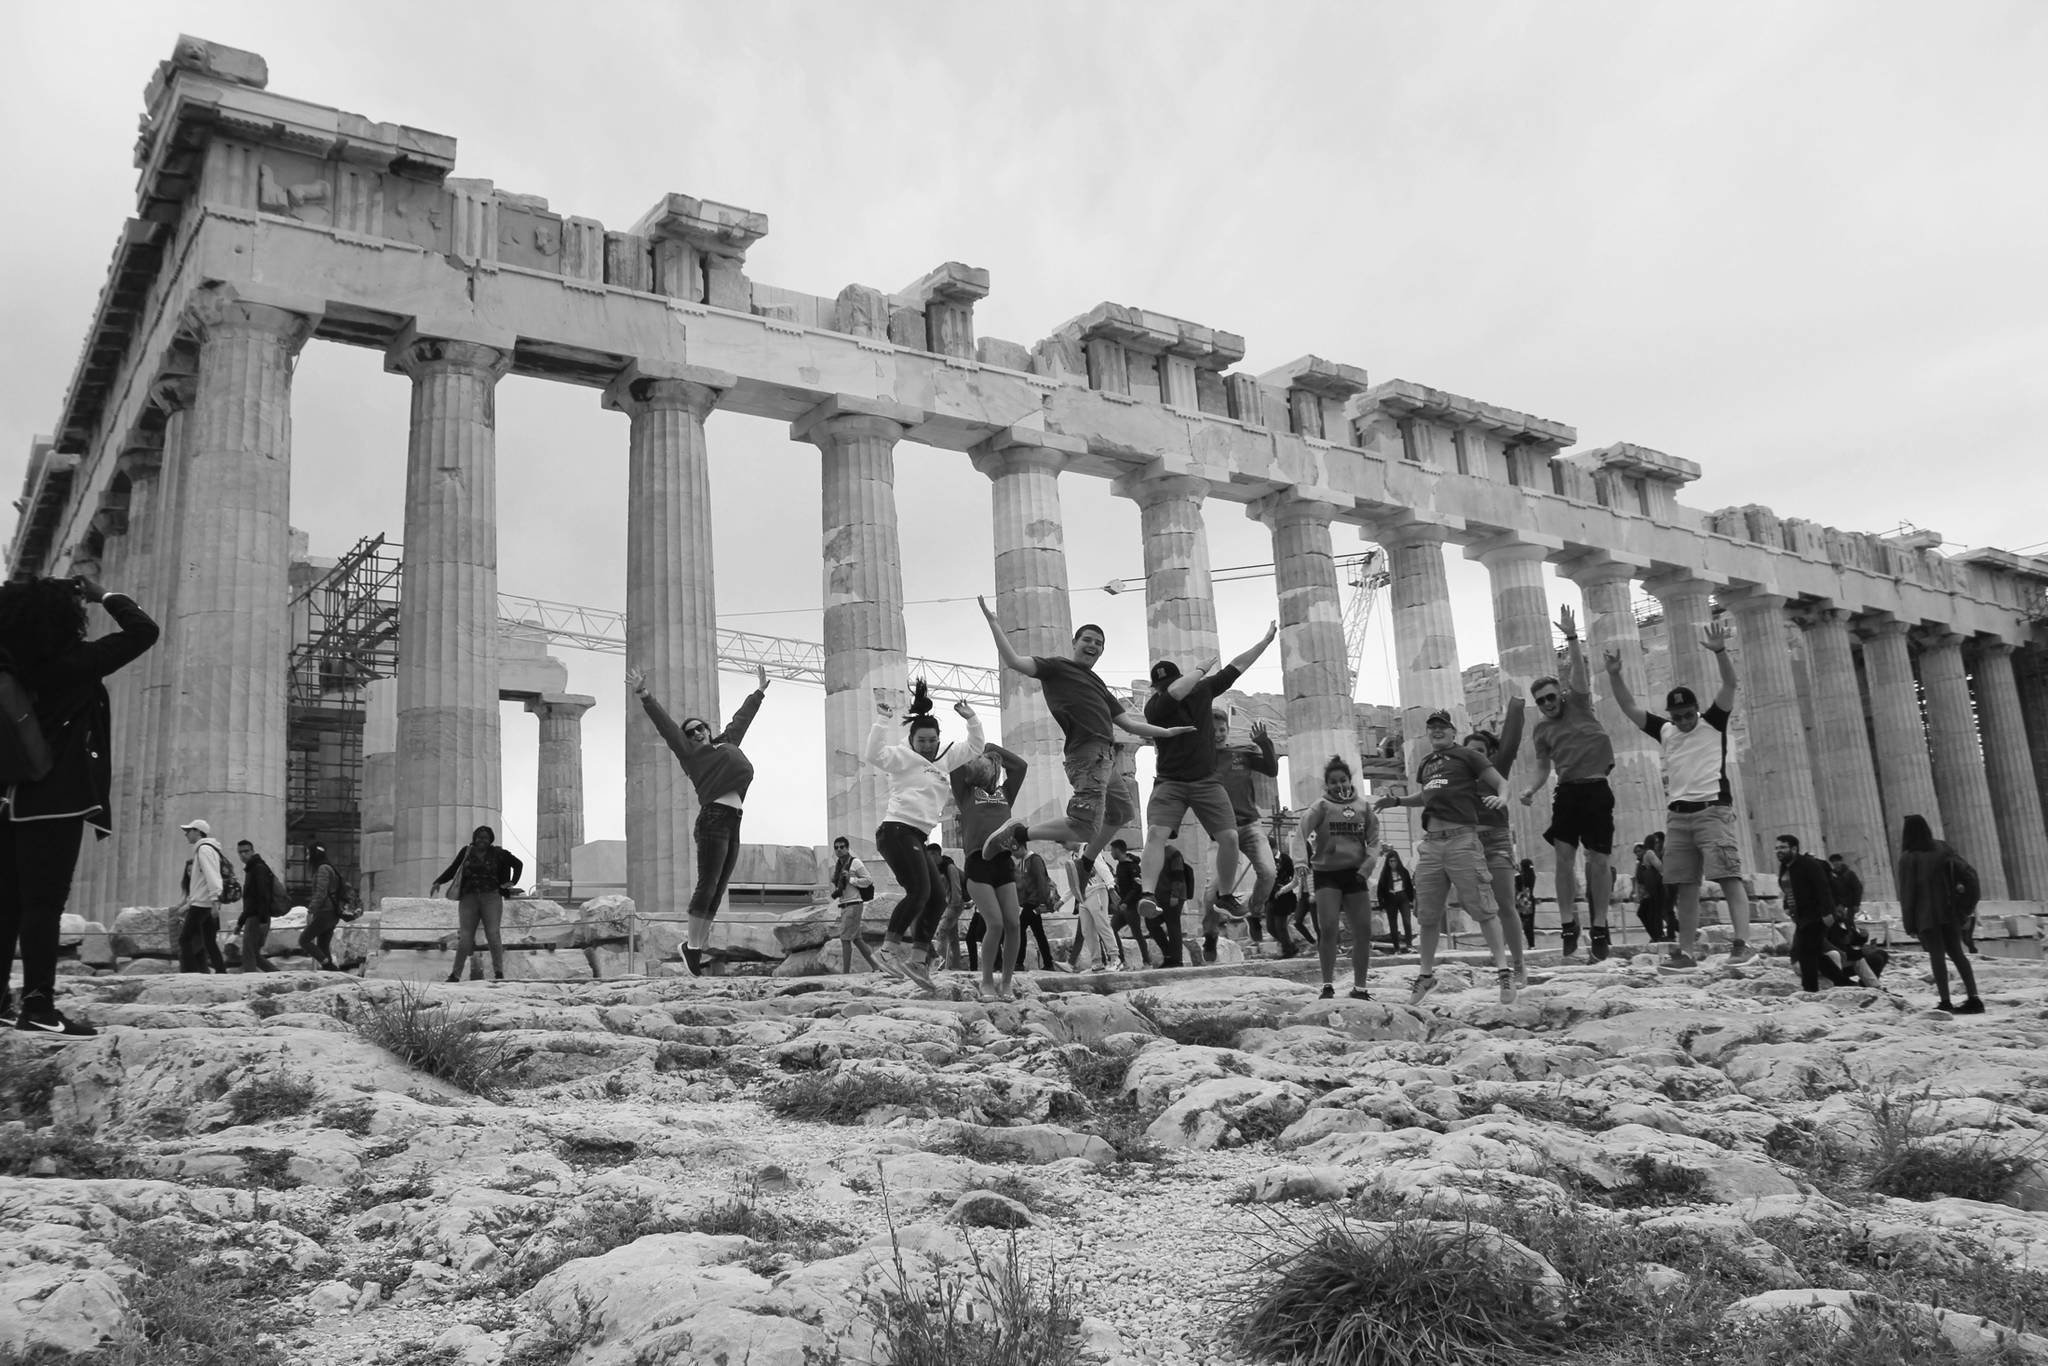 Photo provided Students from Michigan and Homer jump for joy during their recent trip to Greece in April.